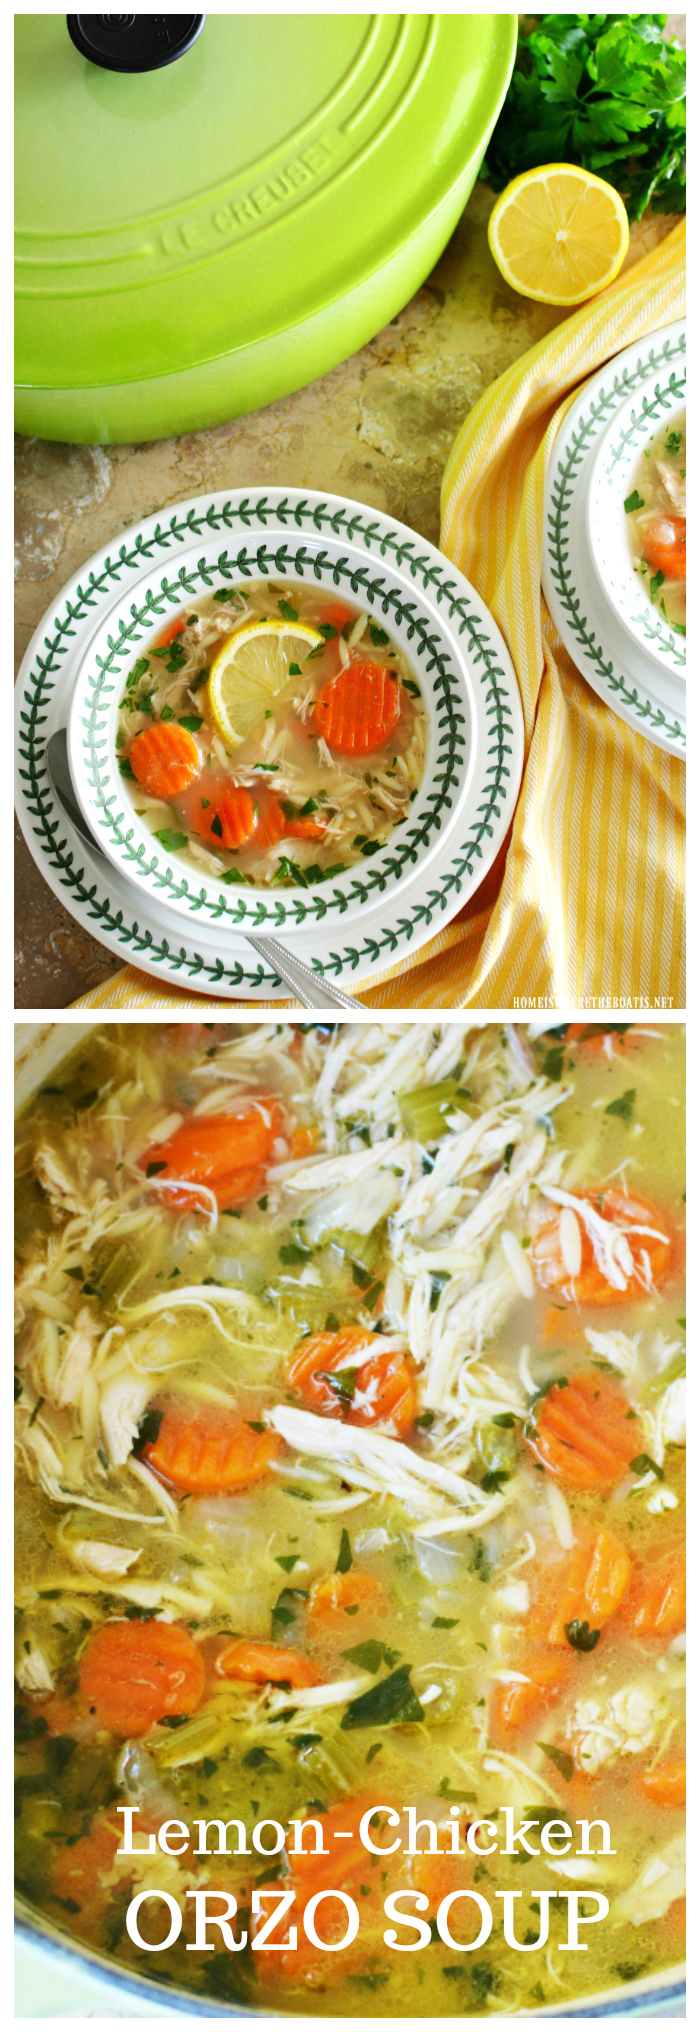 Favorite chicken soup for cold and flu season, Lemon Chicken Orzo Soup! | ©homeiswheretheboatis.net #recipes #soup #winter